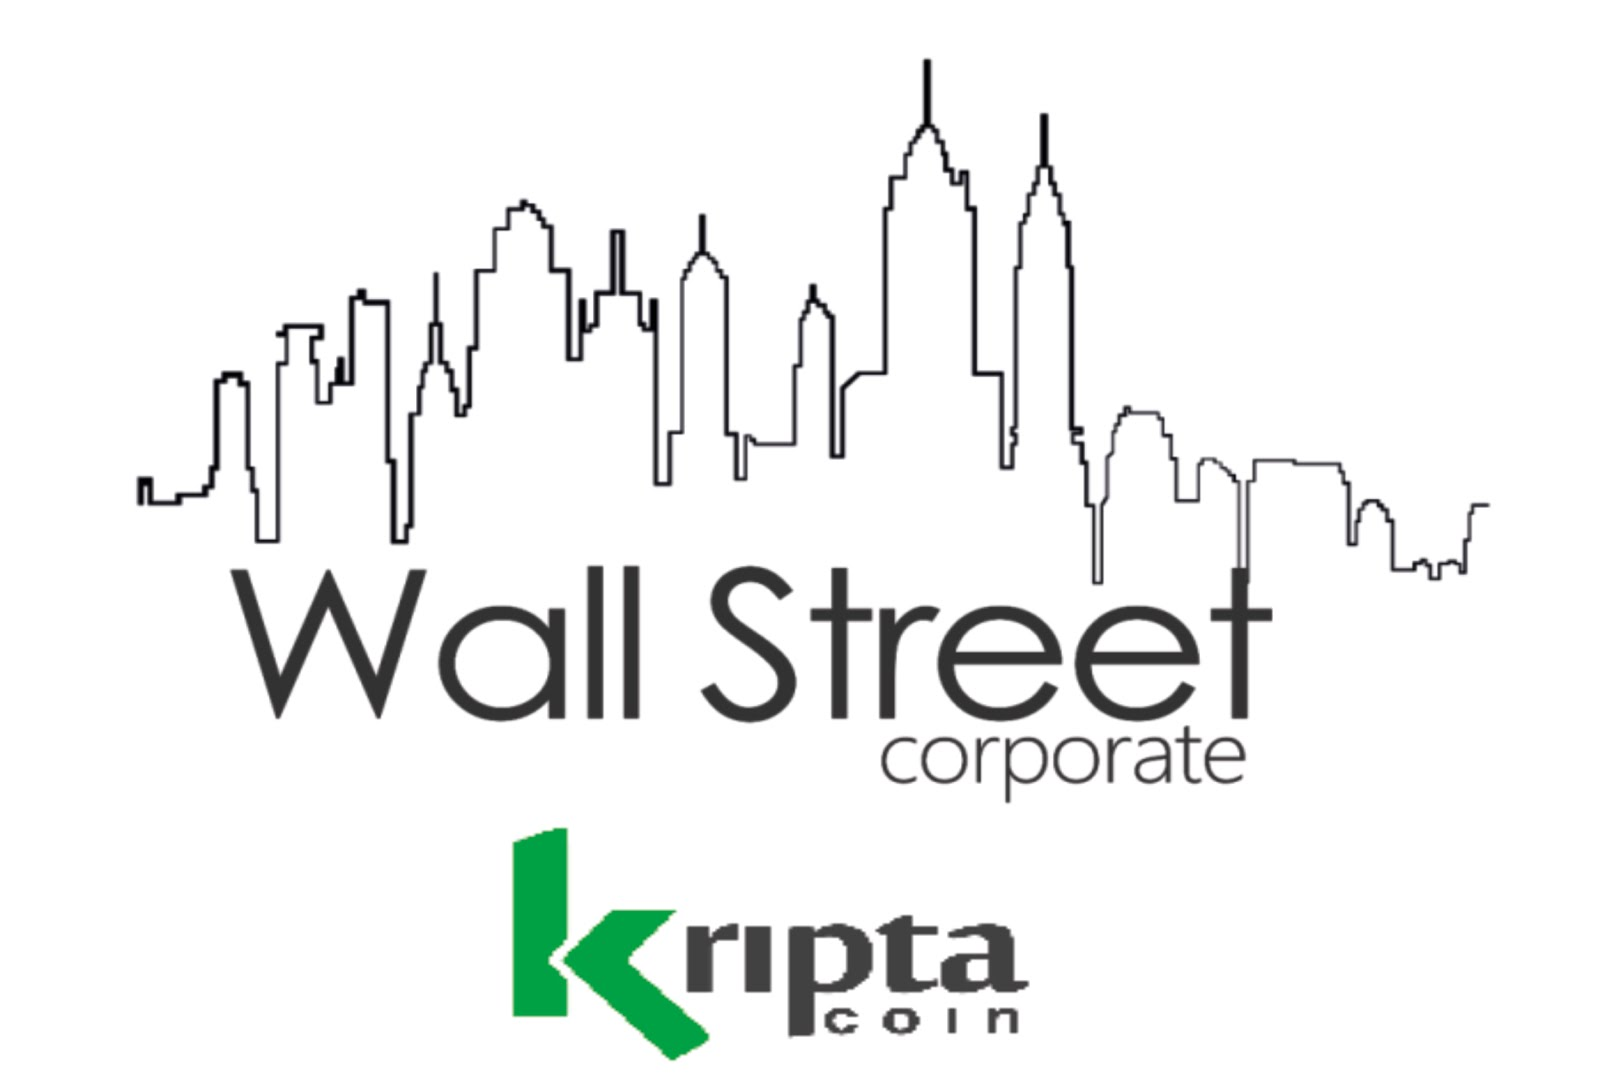 Wall Street Corporate